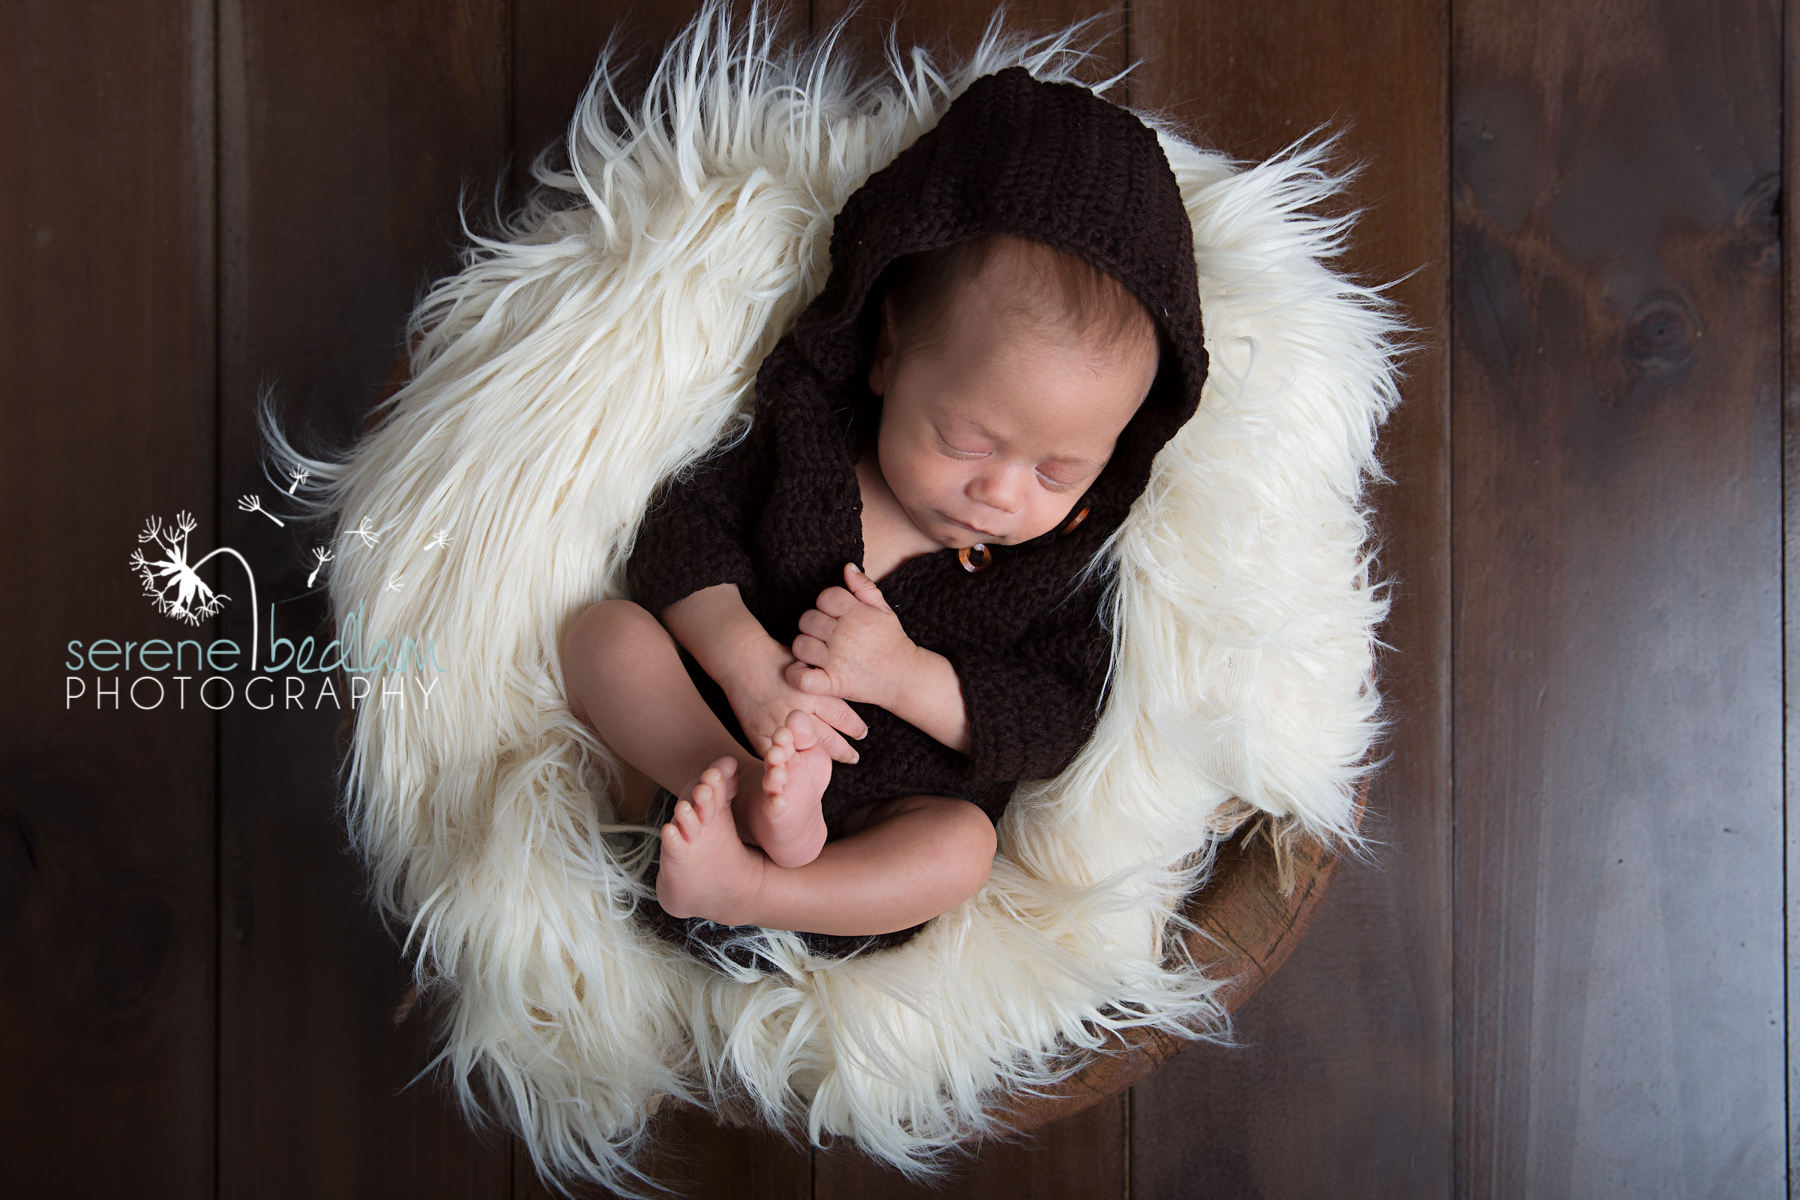 Newman Photographer Newborn Serene Bedlam Photography